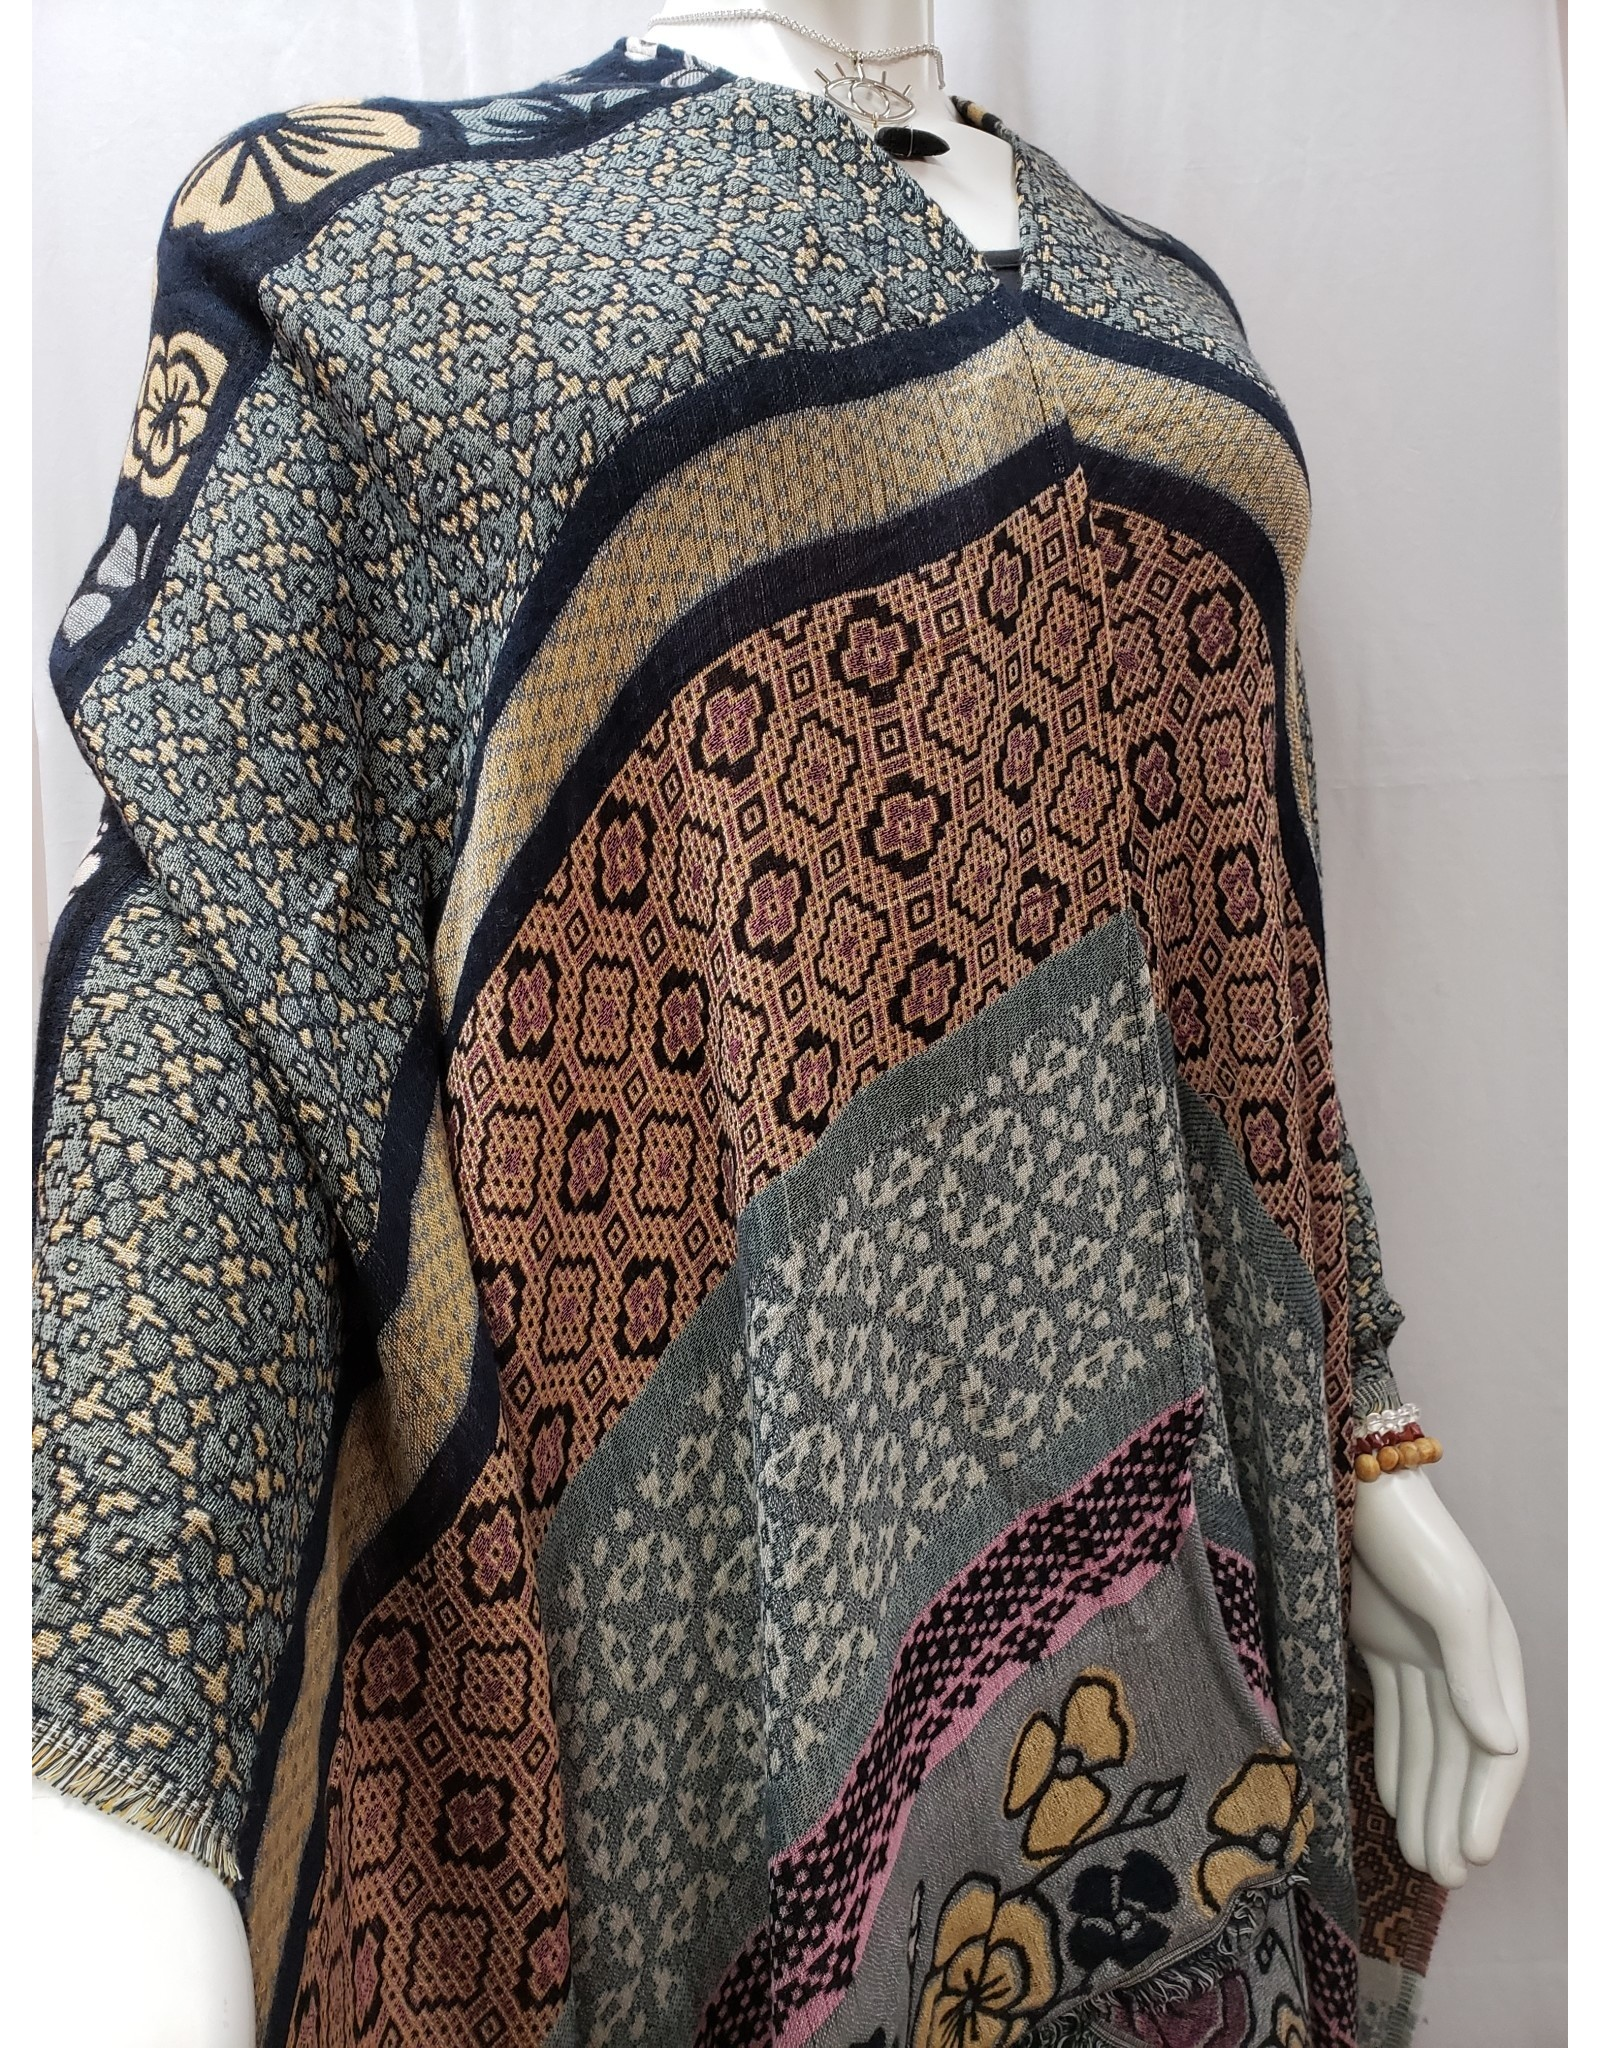 Oriental Floral Inspired Woven Transitional Ruana - Navy Gray